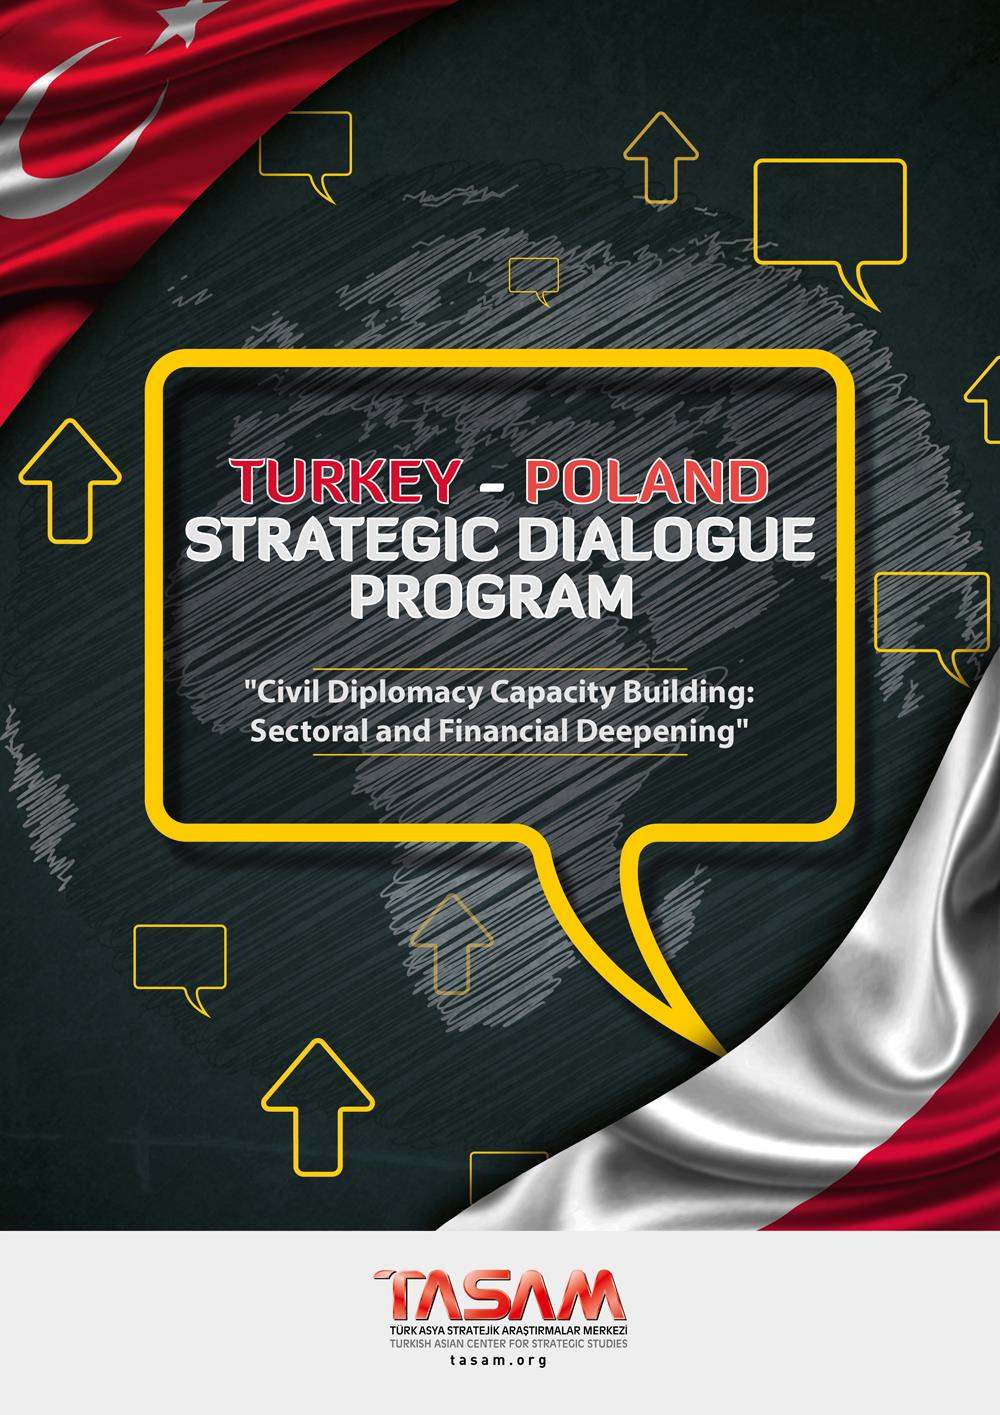 Turkey - Poland Strategic Dialogue Program